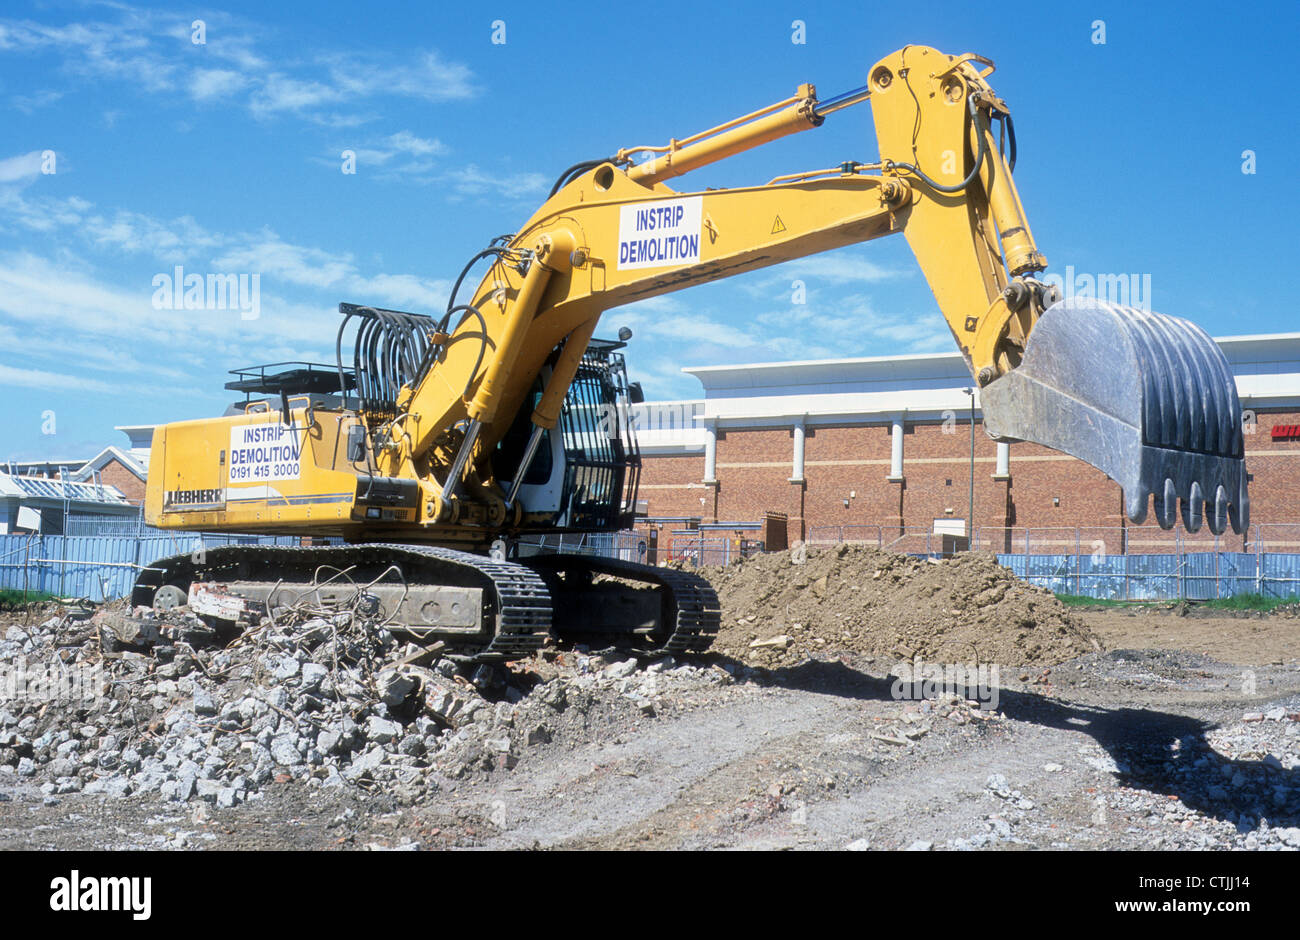 Liebherr-360 Excavator stationary upon a constructions site in Northern England. - Stock Image